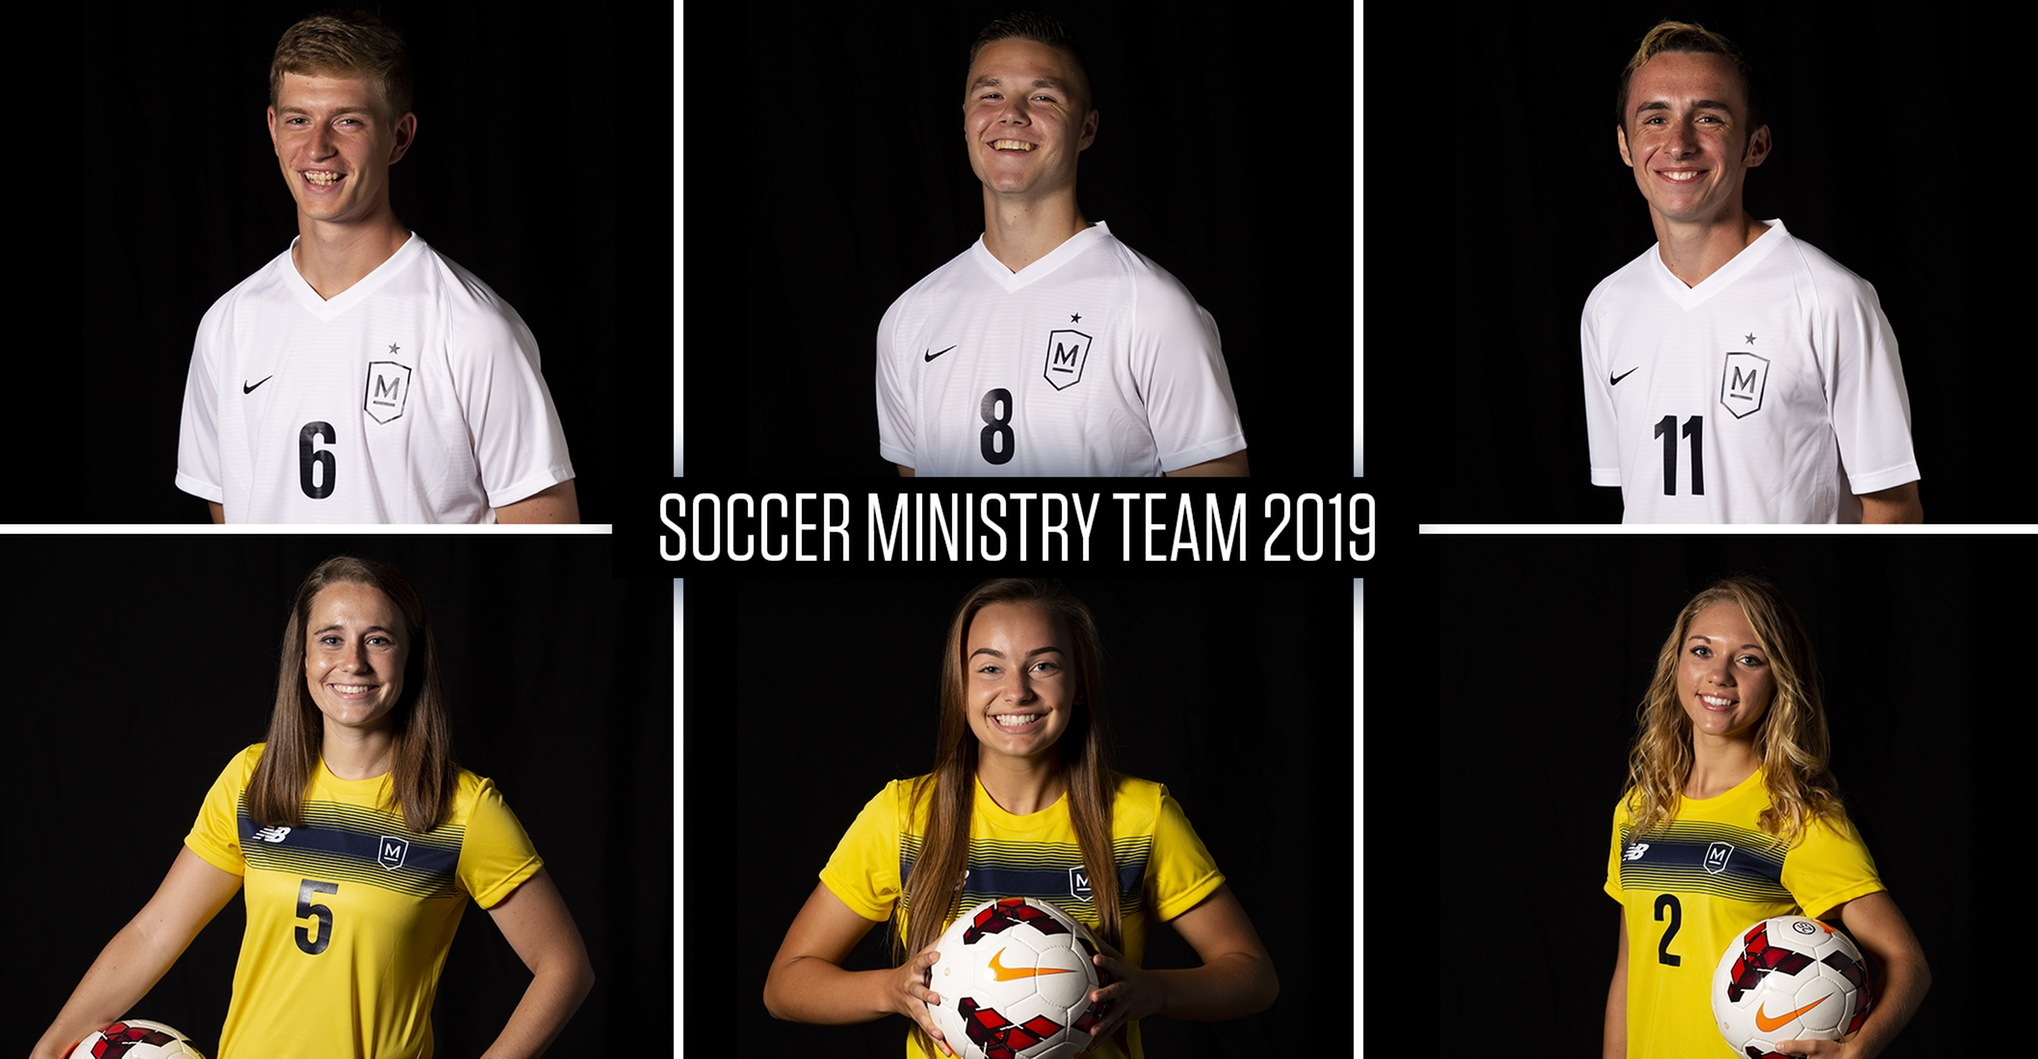 Soccer Ministry Team 2019 Overview